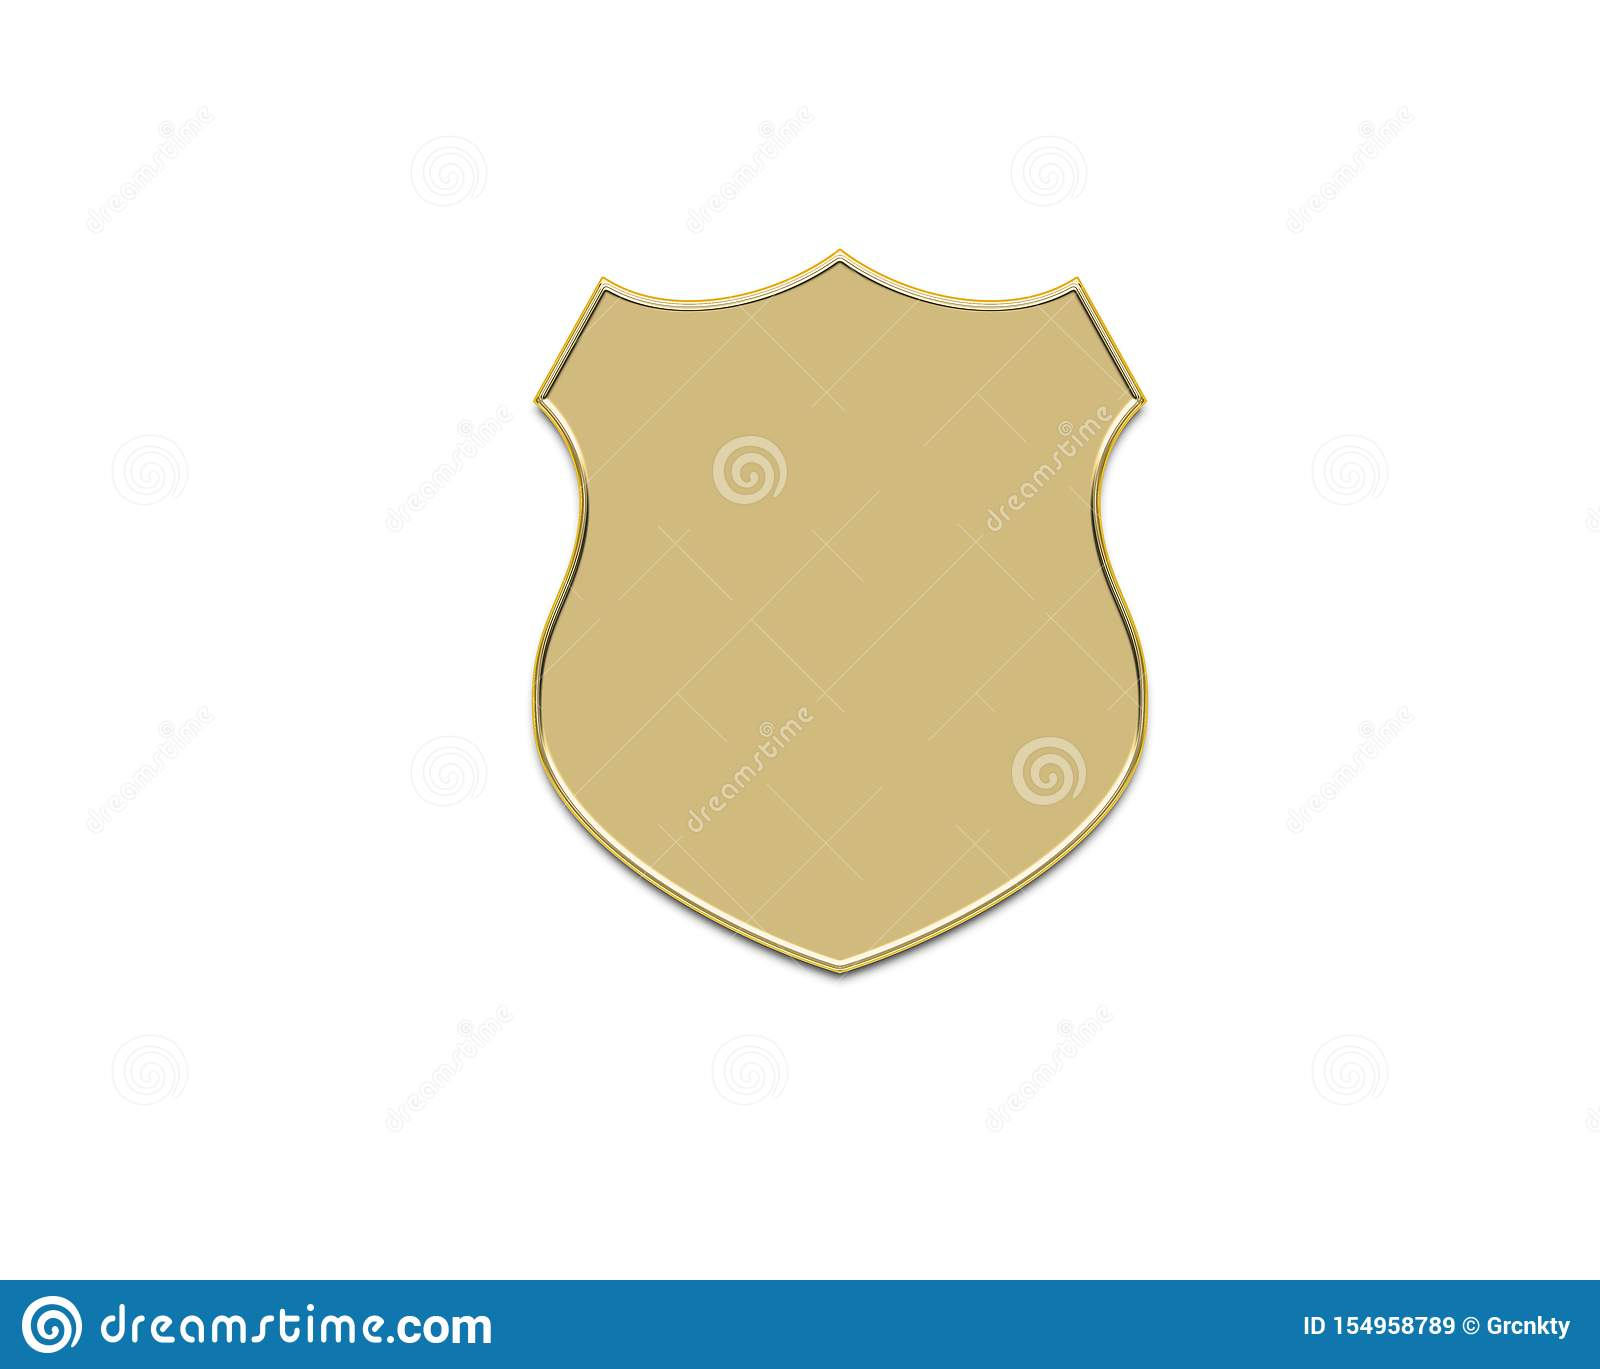 Gold shield shape icon